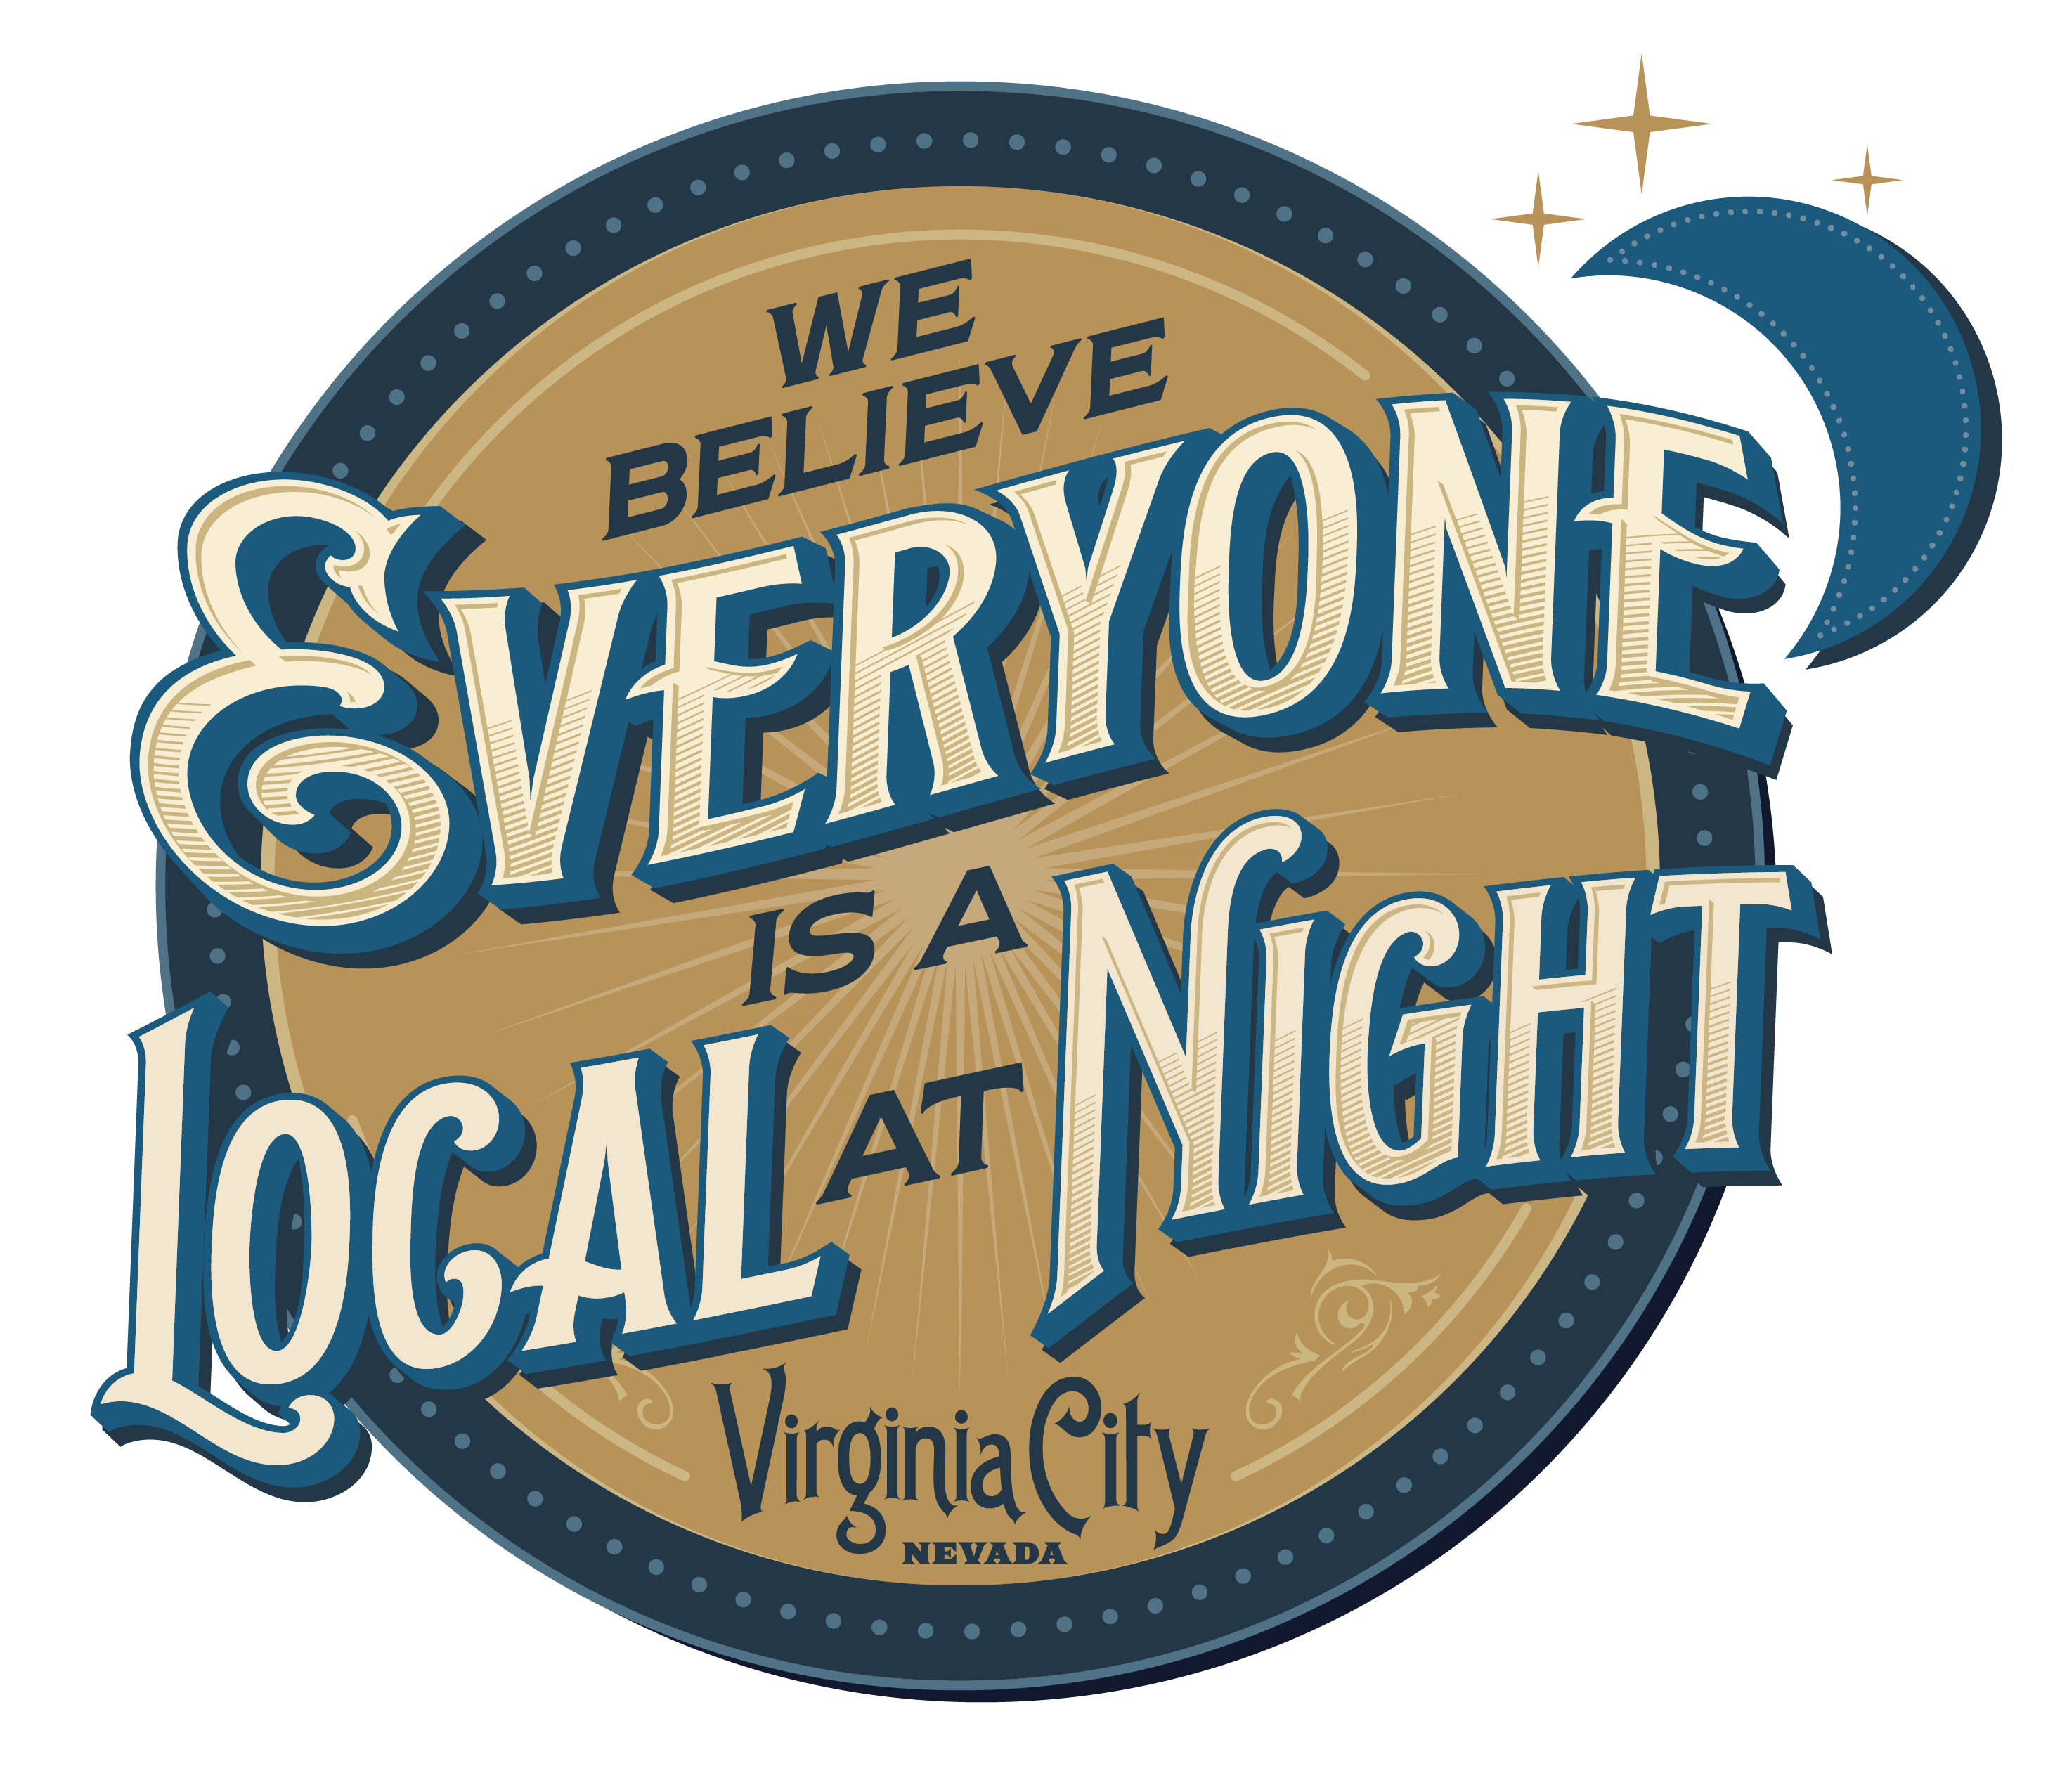 Everyone Is A Local At Night